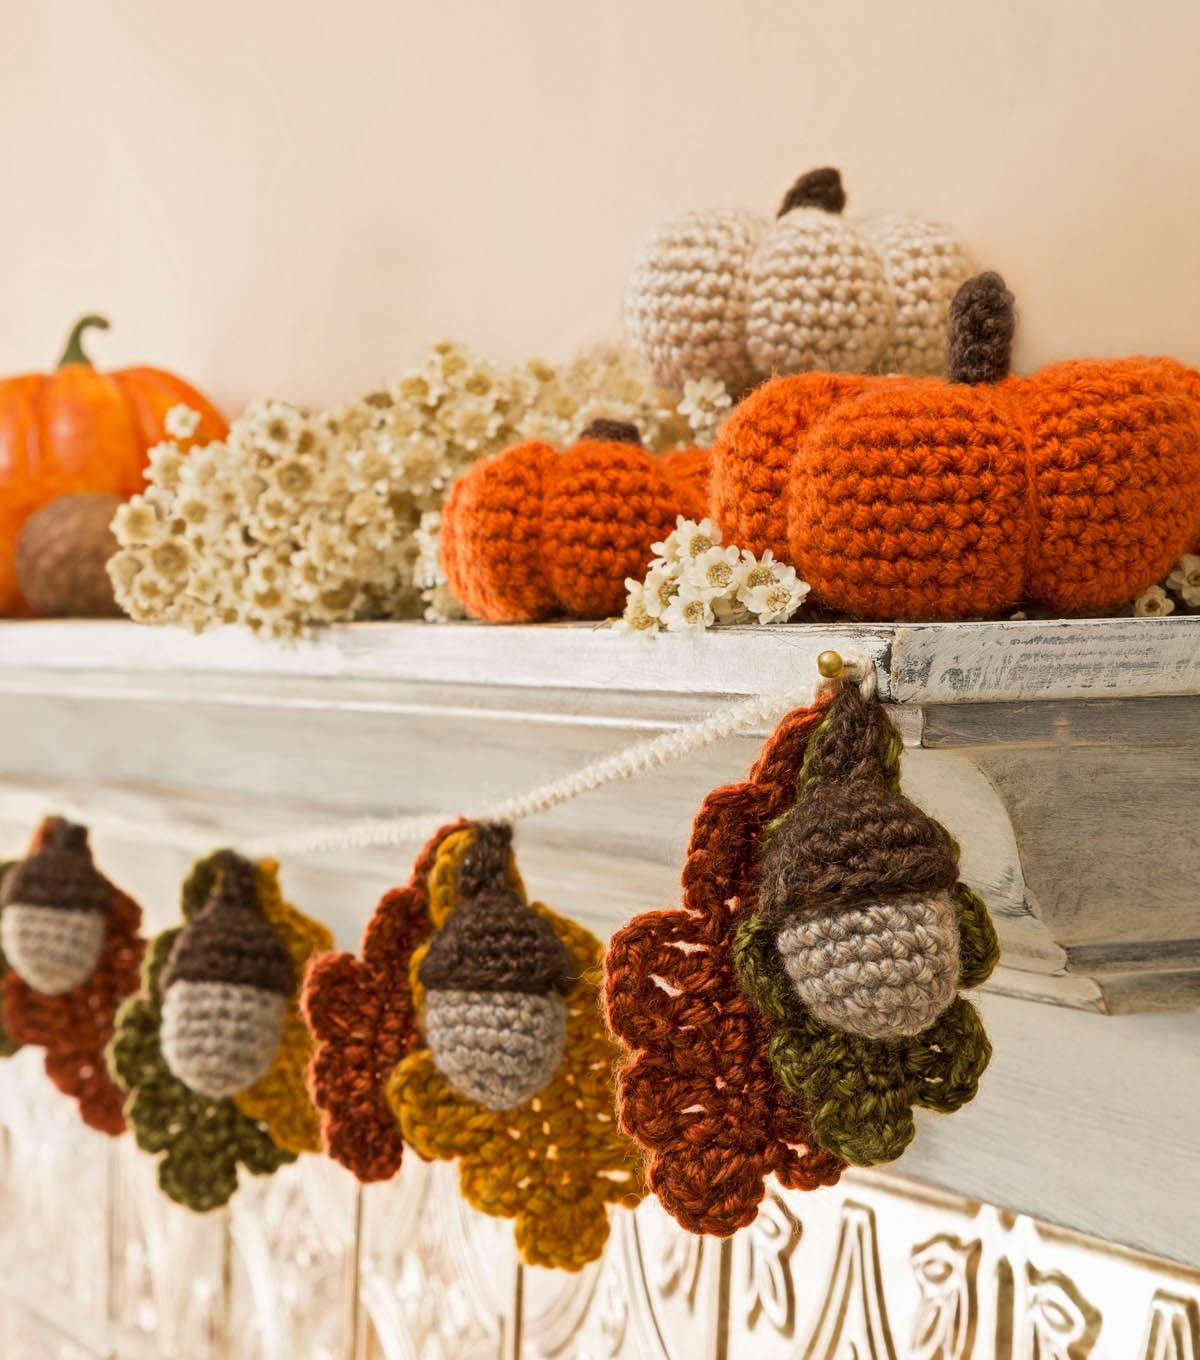 35 Different Types Of Diy Little Crochet Pumpkin Garland That Will Give You Creative Ideas Photo Gallery Decoratorist